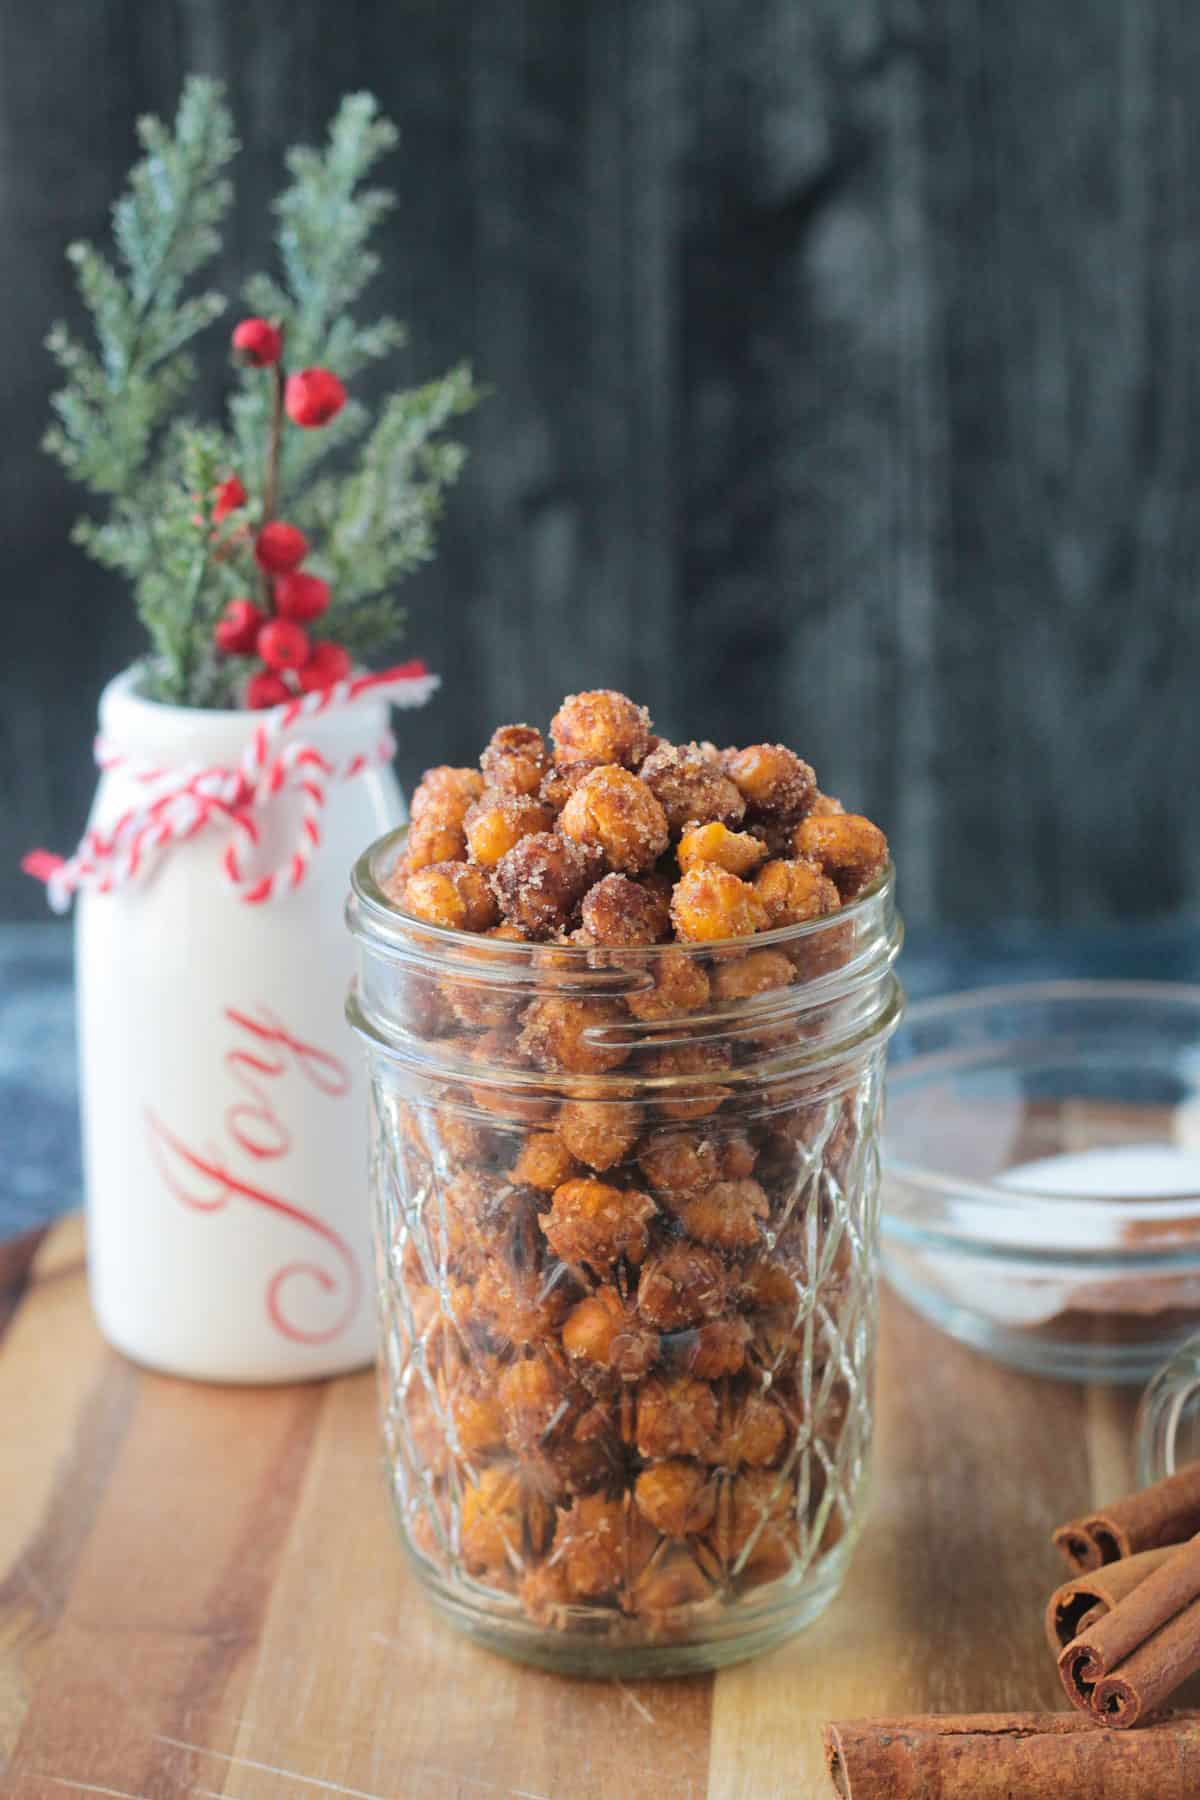 Cinnamon sugar crunchy chickpeas in a glass jar in front of a white vase.